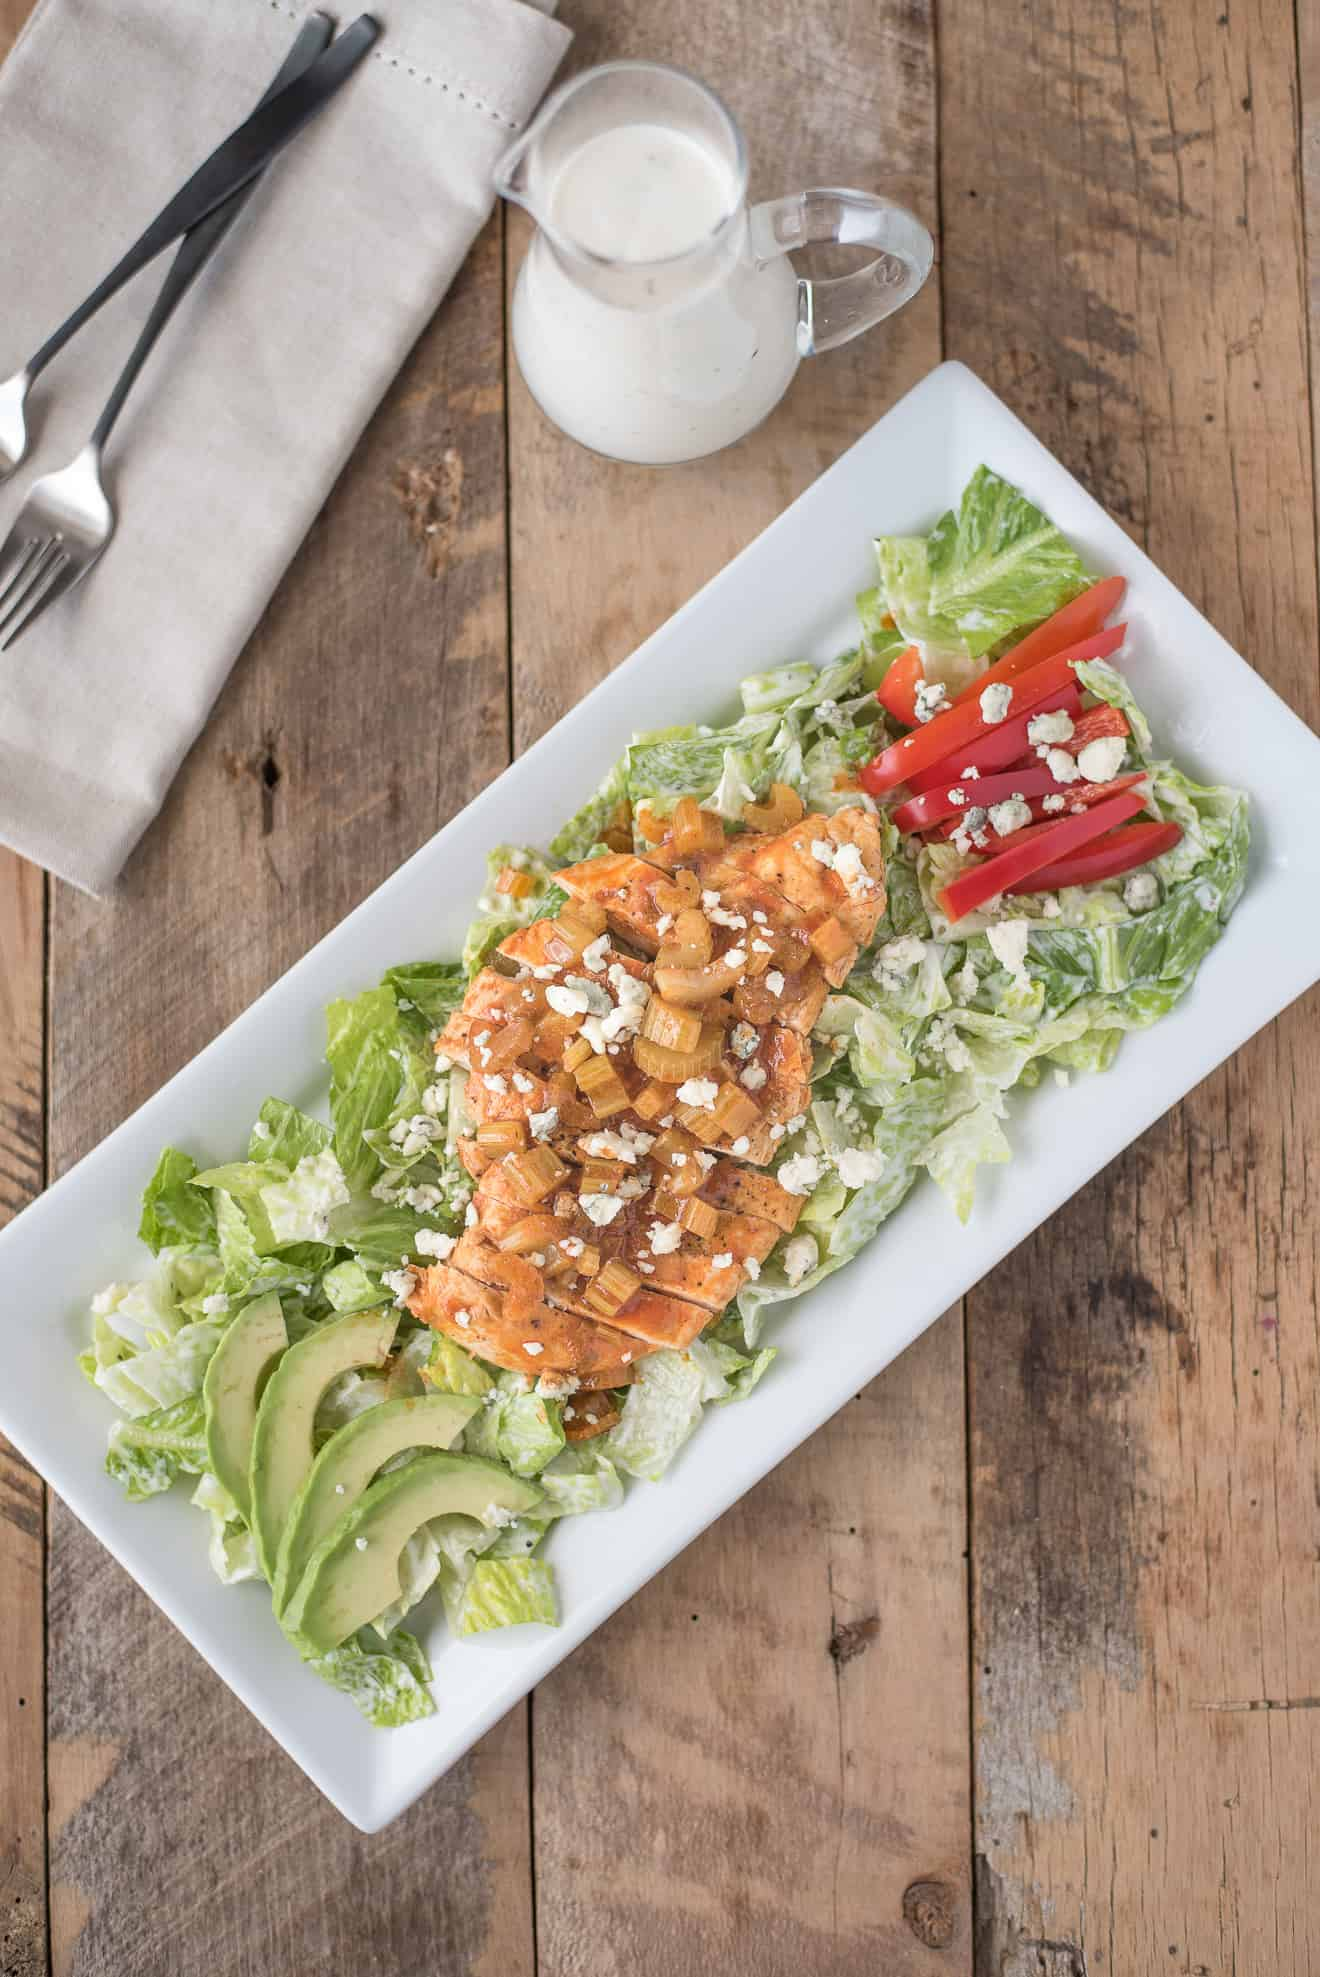 Buffalo chicken, peppers, avocado, blue cheese served over lettuce